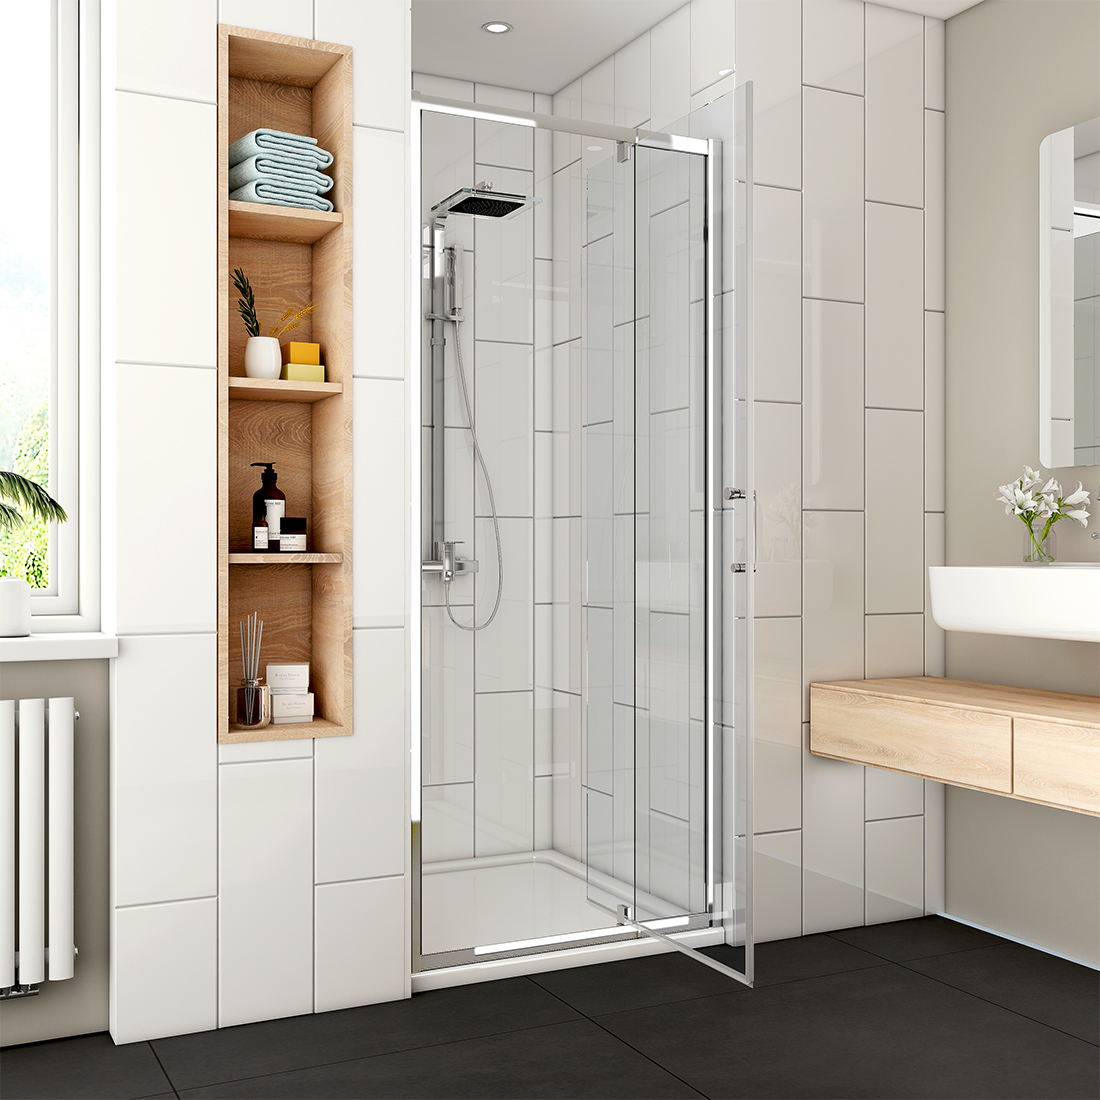 Details About 31 36 1 2 X 72 Framed Pivot Swing Shower Door 1 4 Clear Glass Chrome Finish